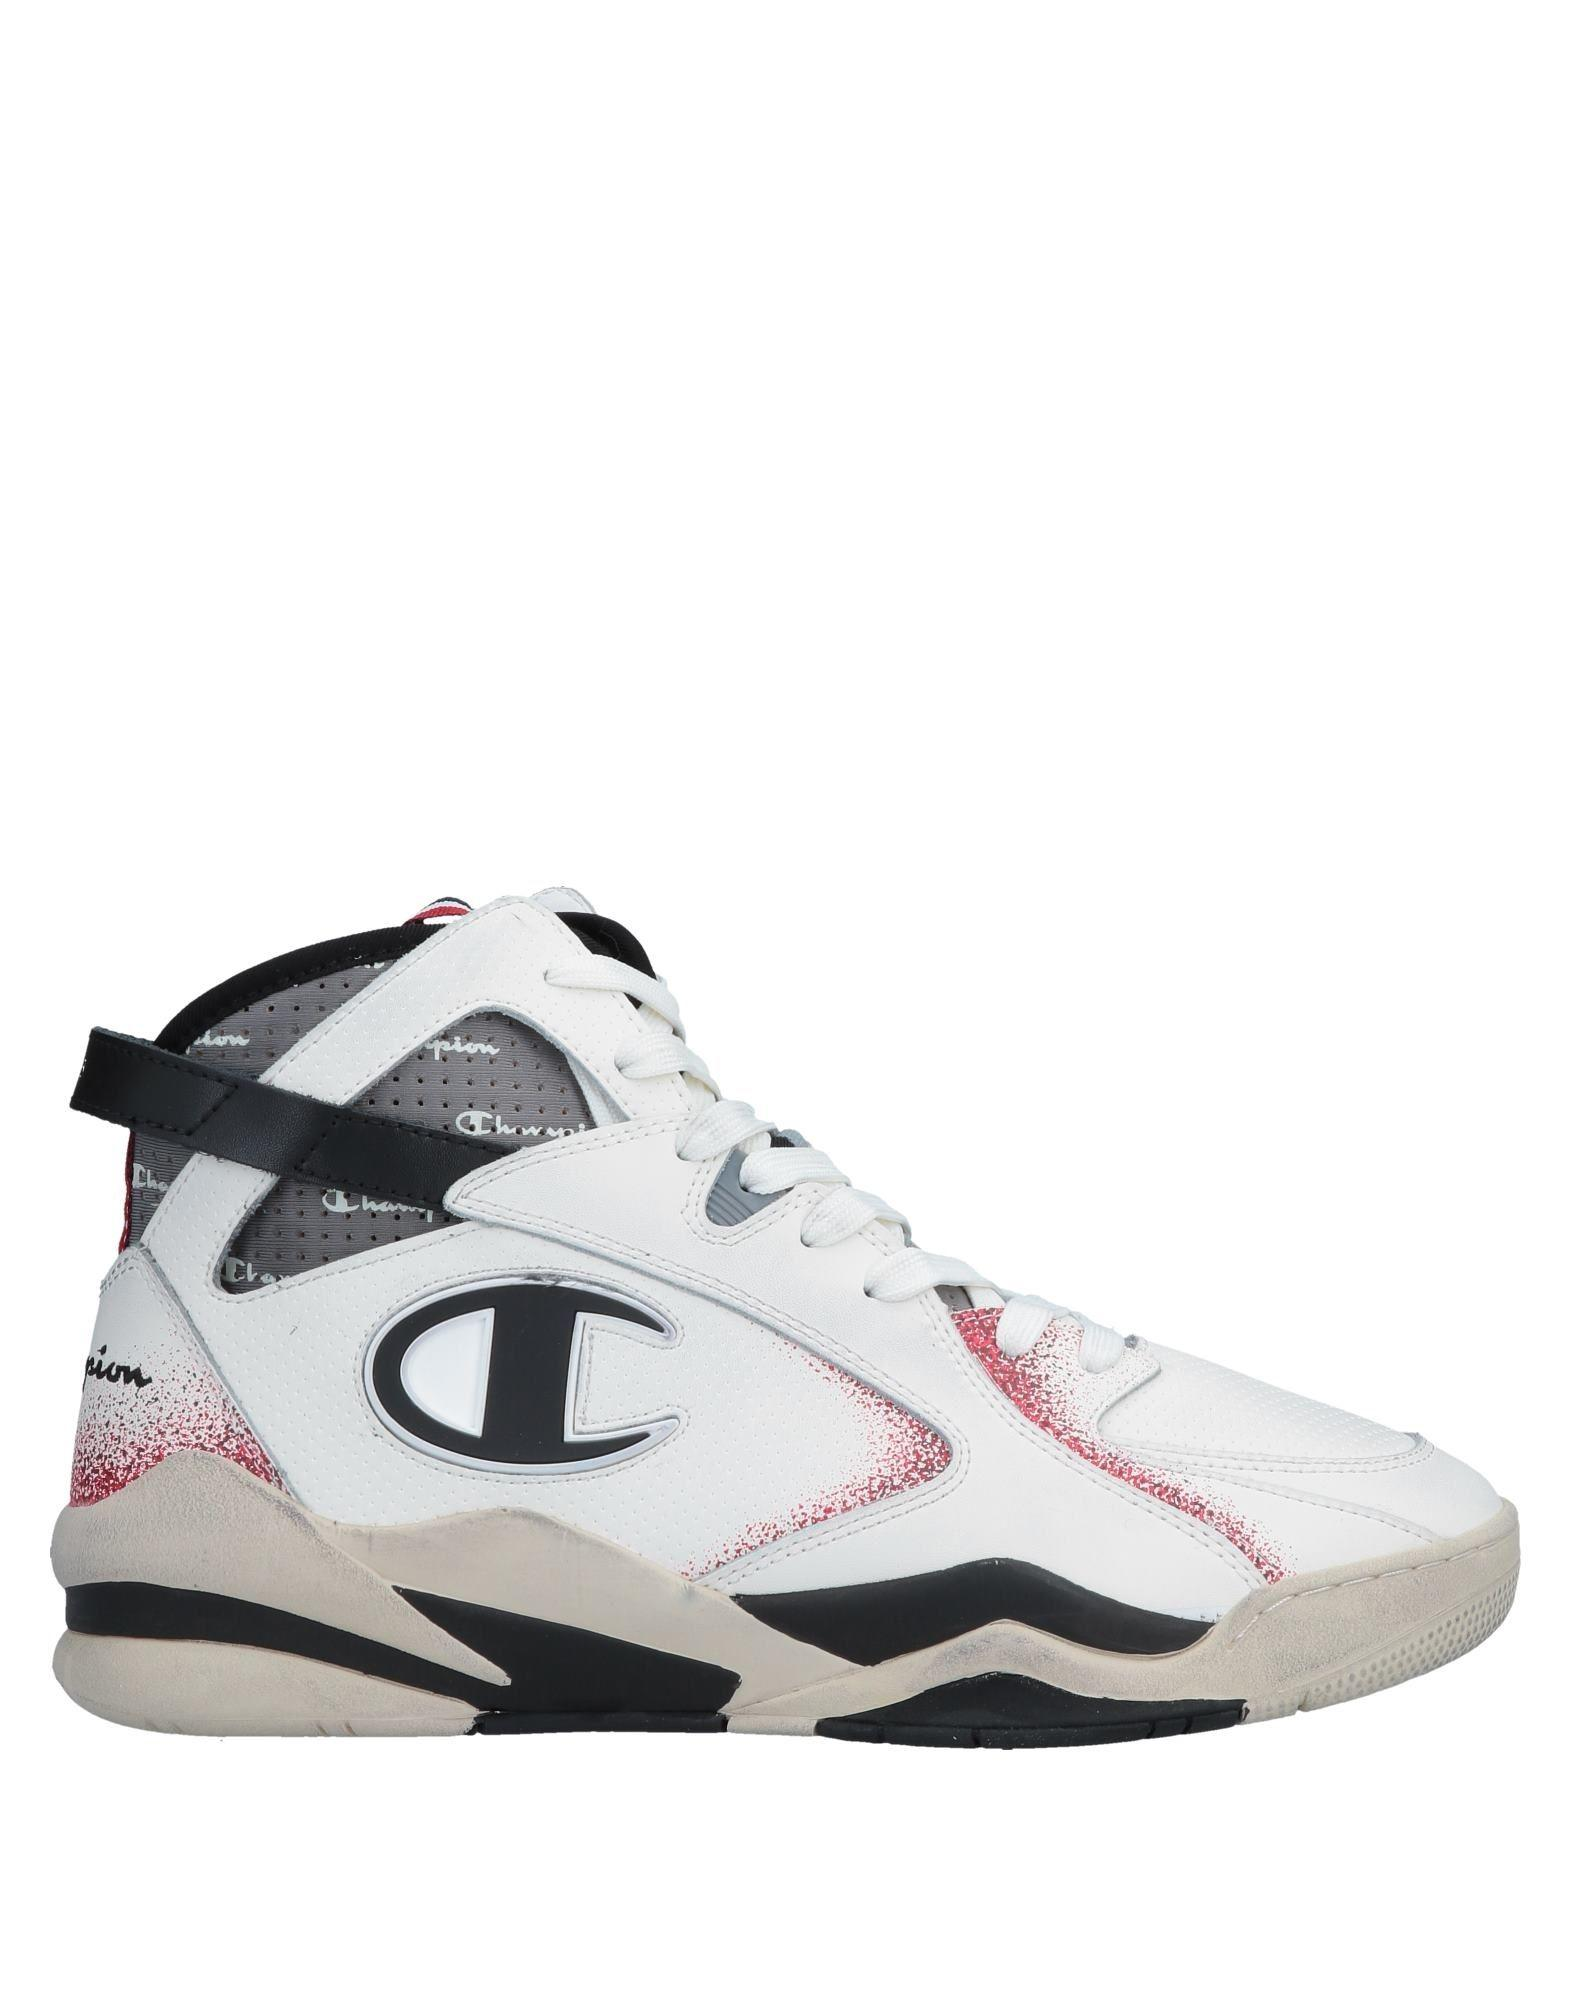 2a7d85e4405 Lyst - Champion High-tops   Sneakers in White for Men - Save 43%